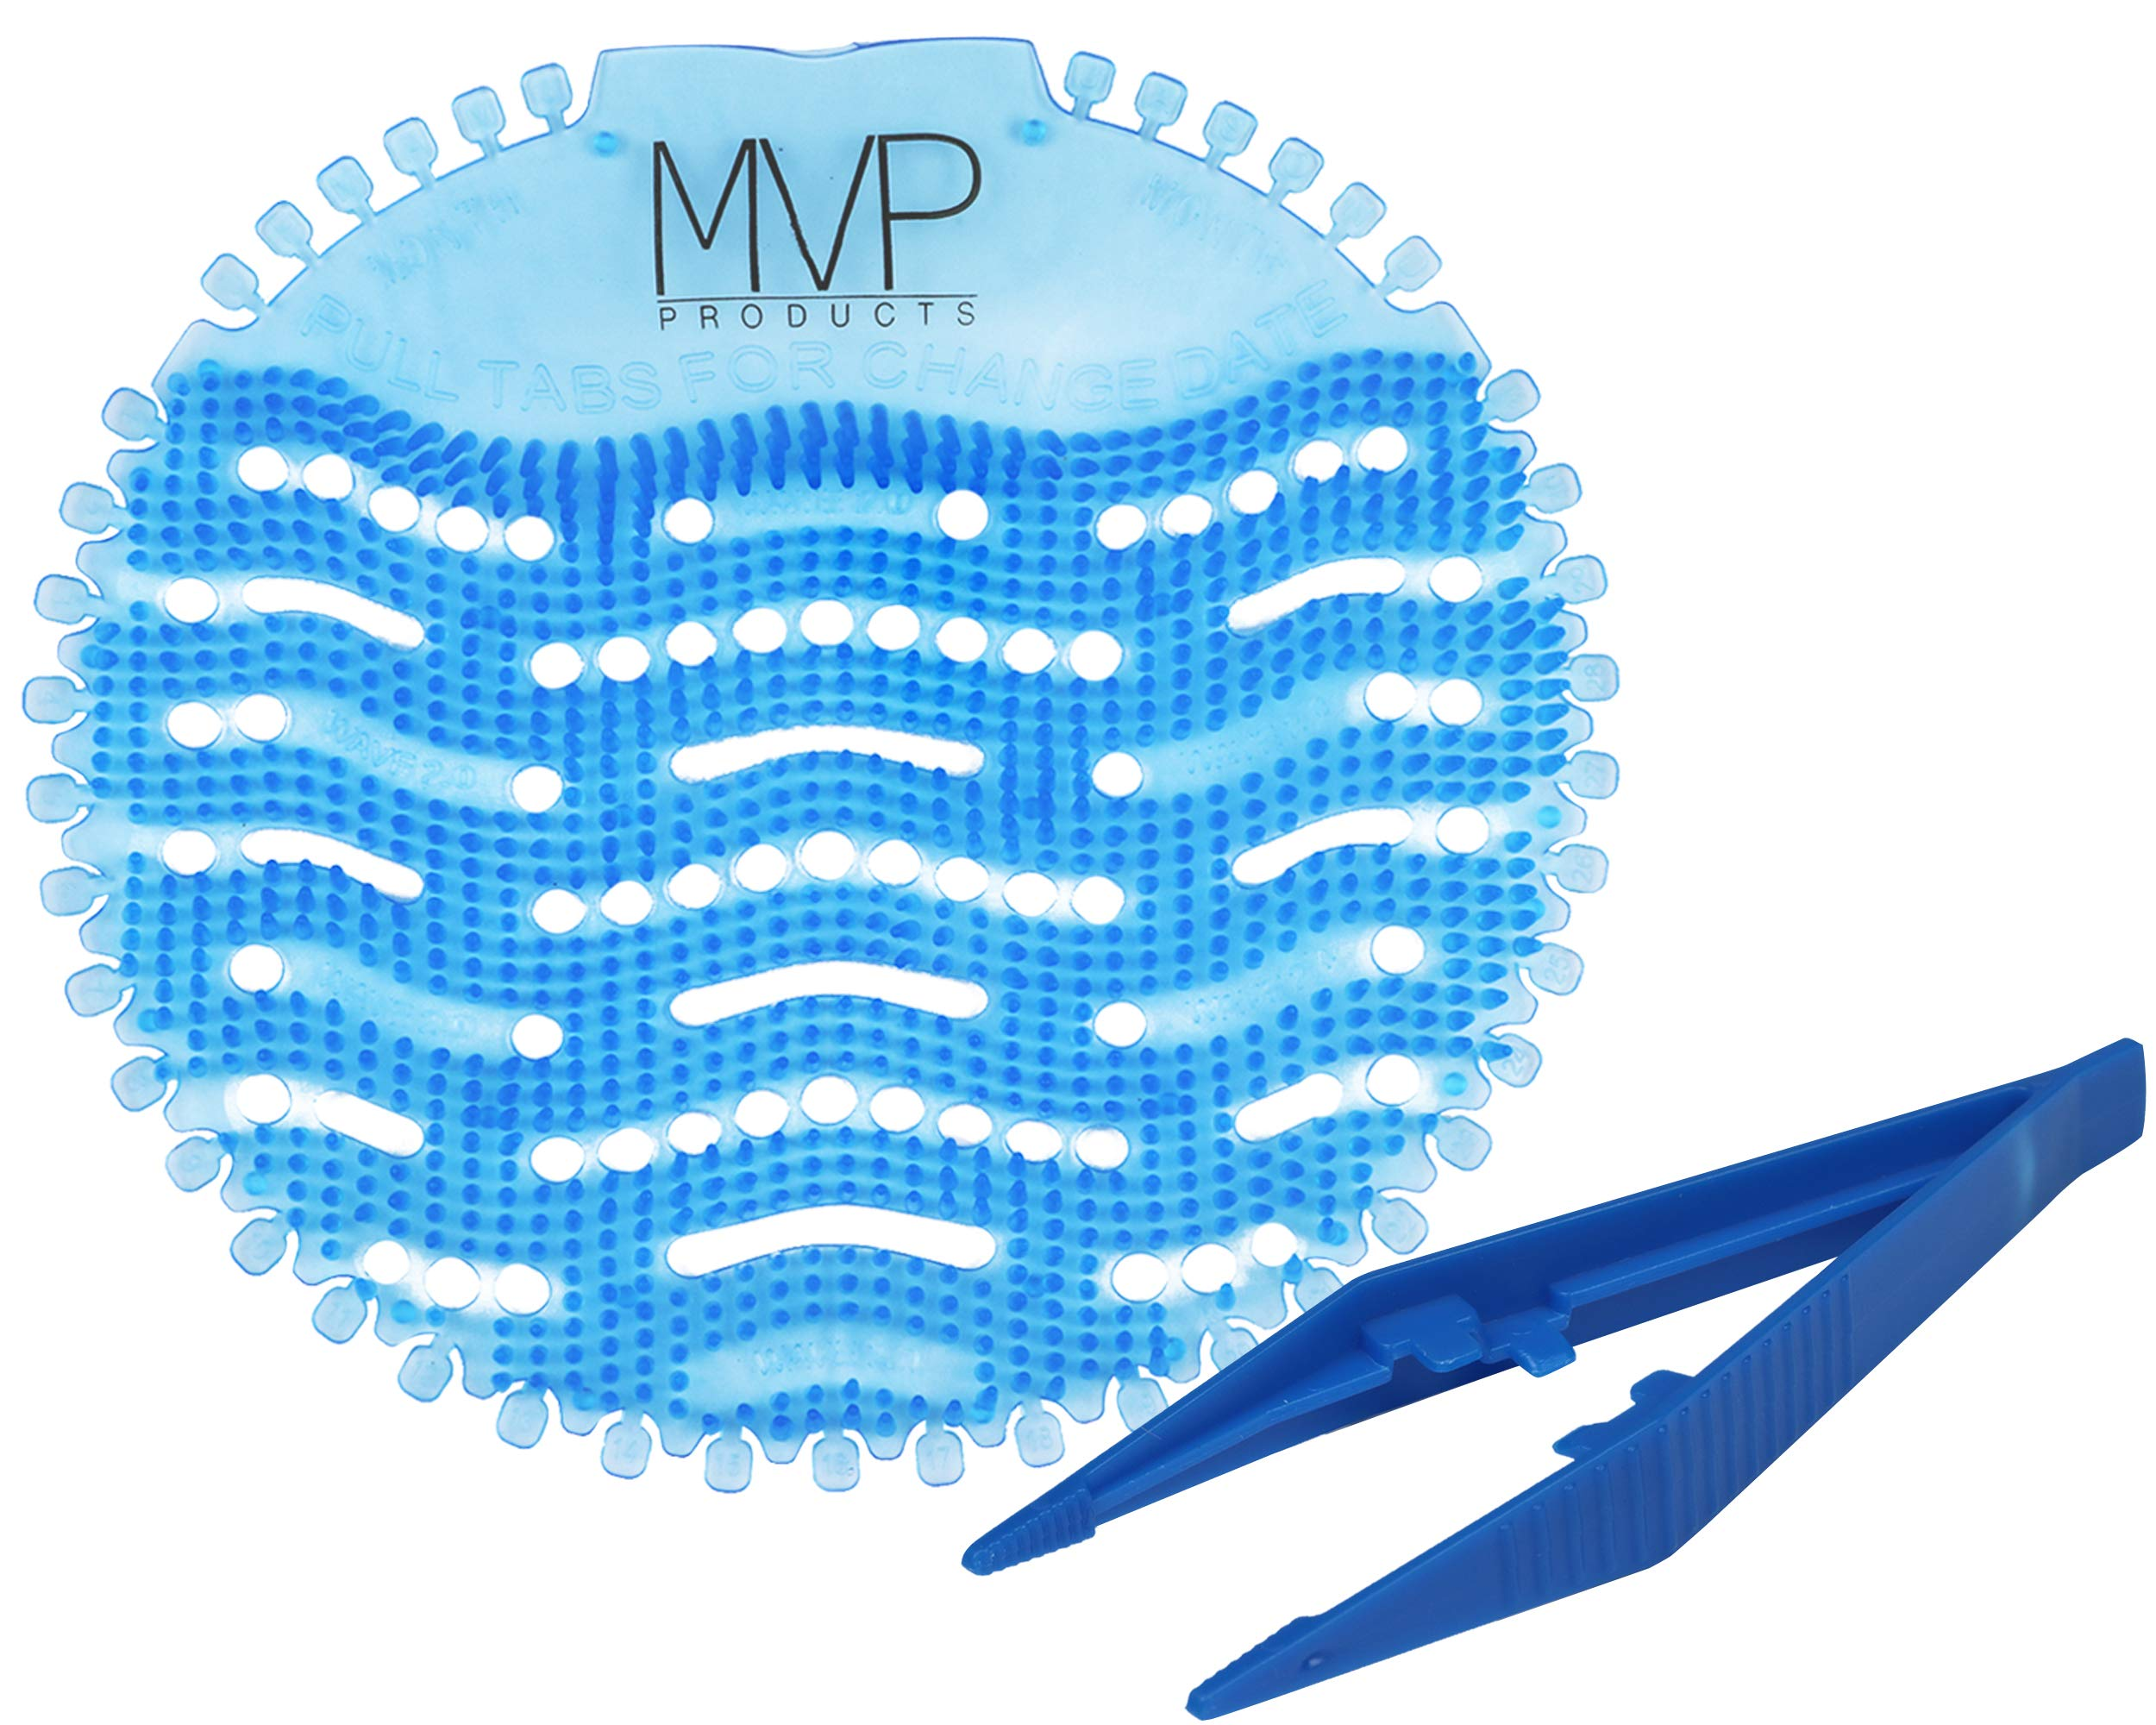 Urinal Screens Deodorizer - Splash Free Pad, Urinal Cakes Odor Neutralizer, Fragrance Diffuser, Bathroom and Toilet Drain Freshener - 30 Days, 5000 Flushes, Janitorial Supplies - 12 Pack with Tweezer by MVP Products LLC